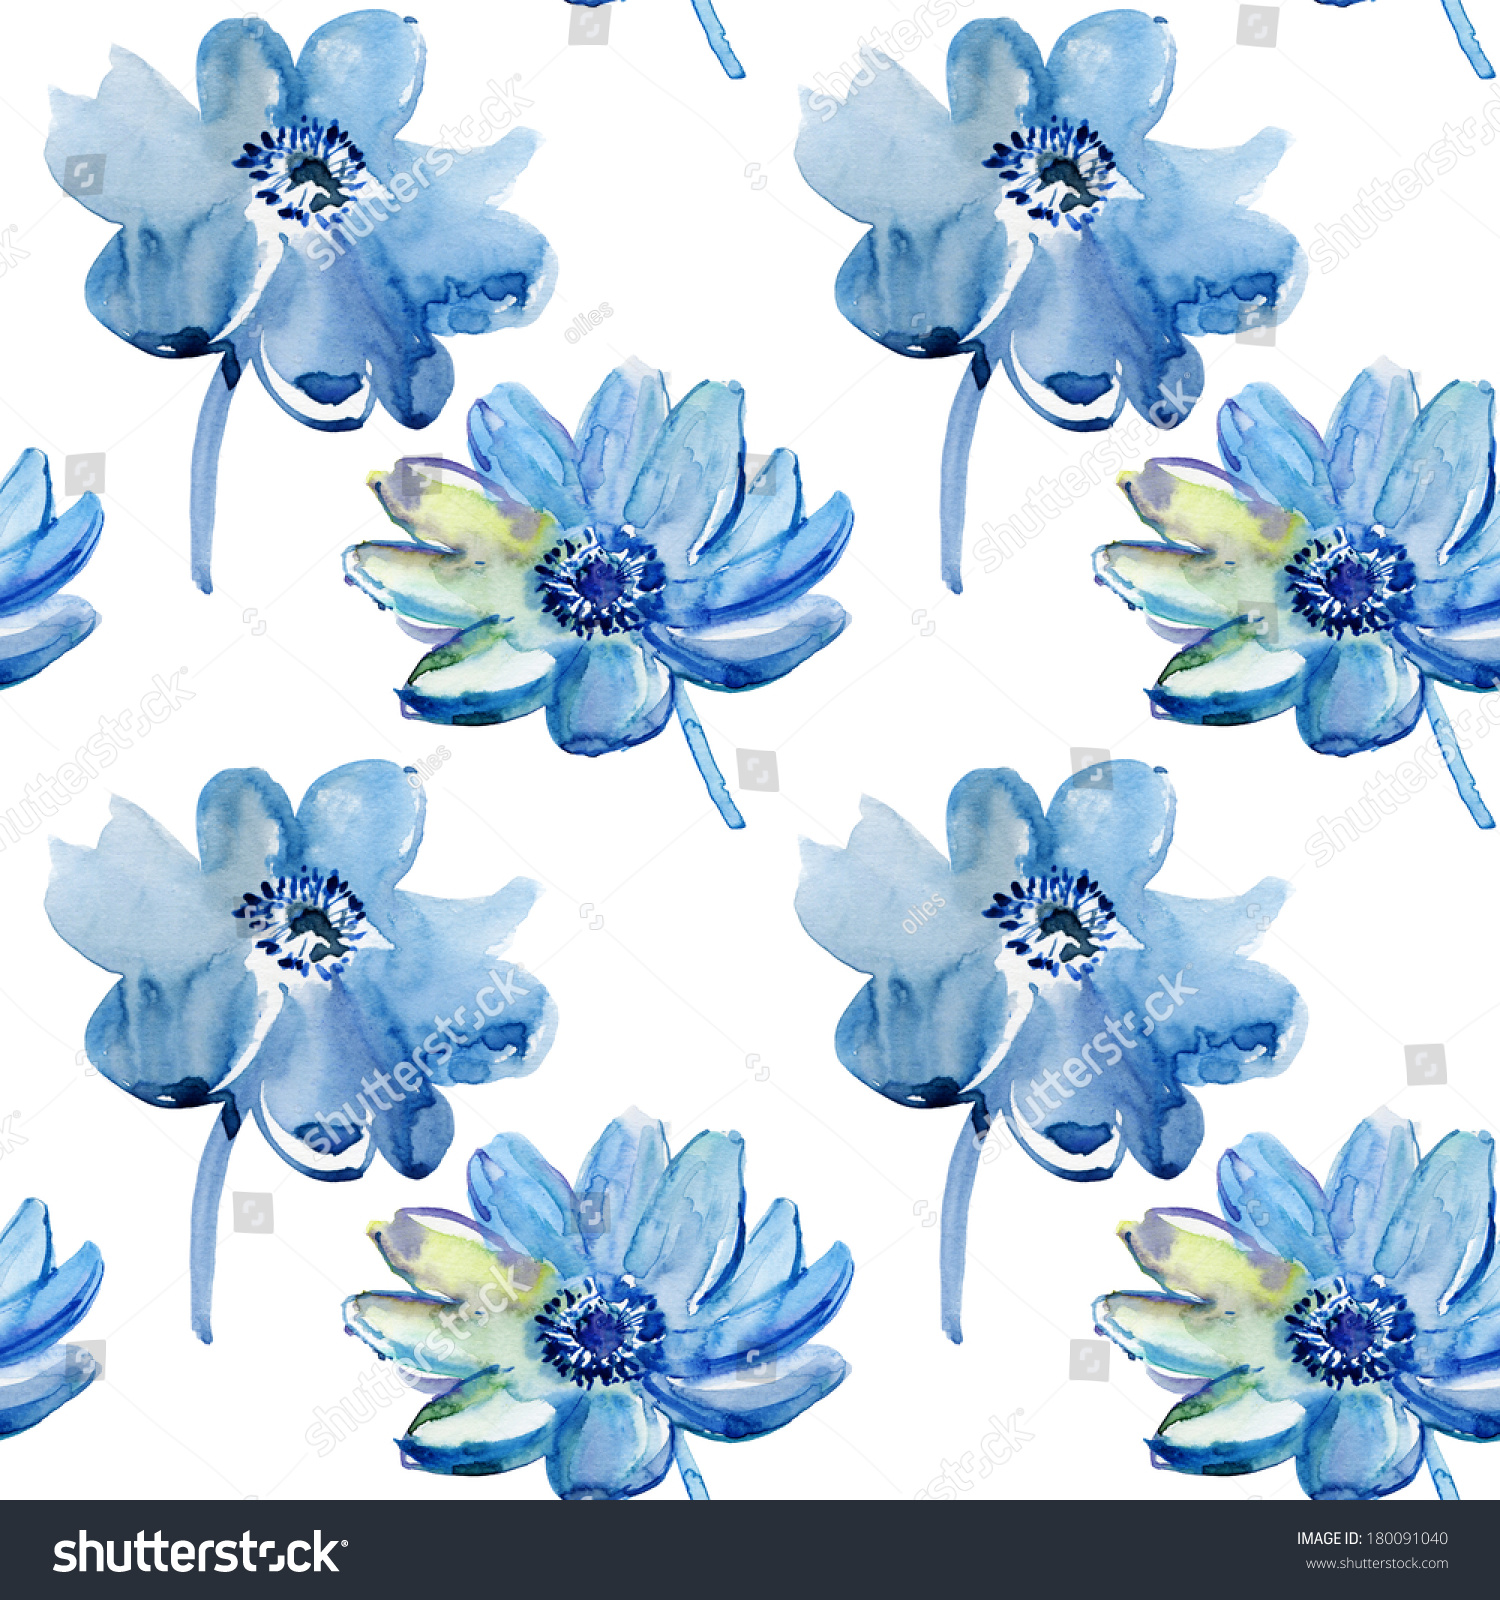 Seamless Pattern With Beautiful Blue Flowers Watercolor Painting